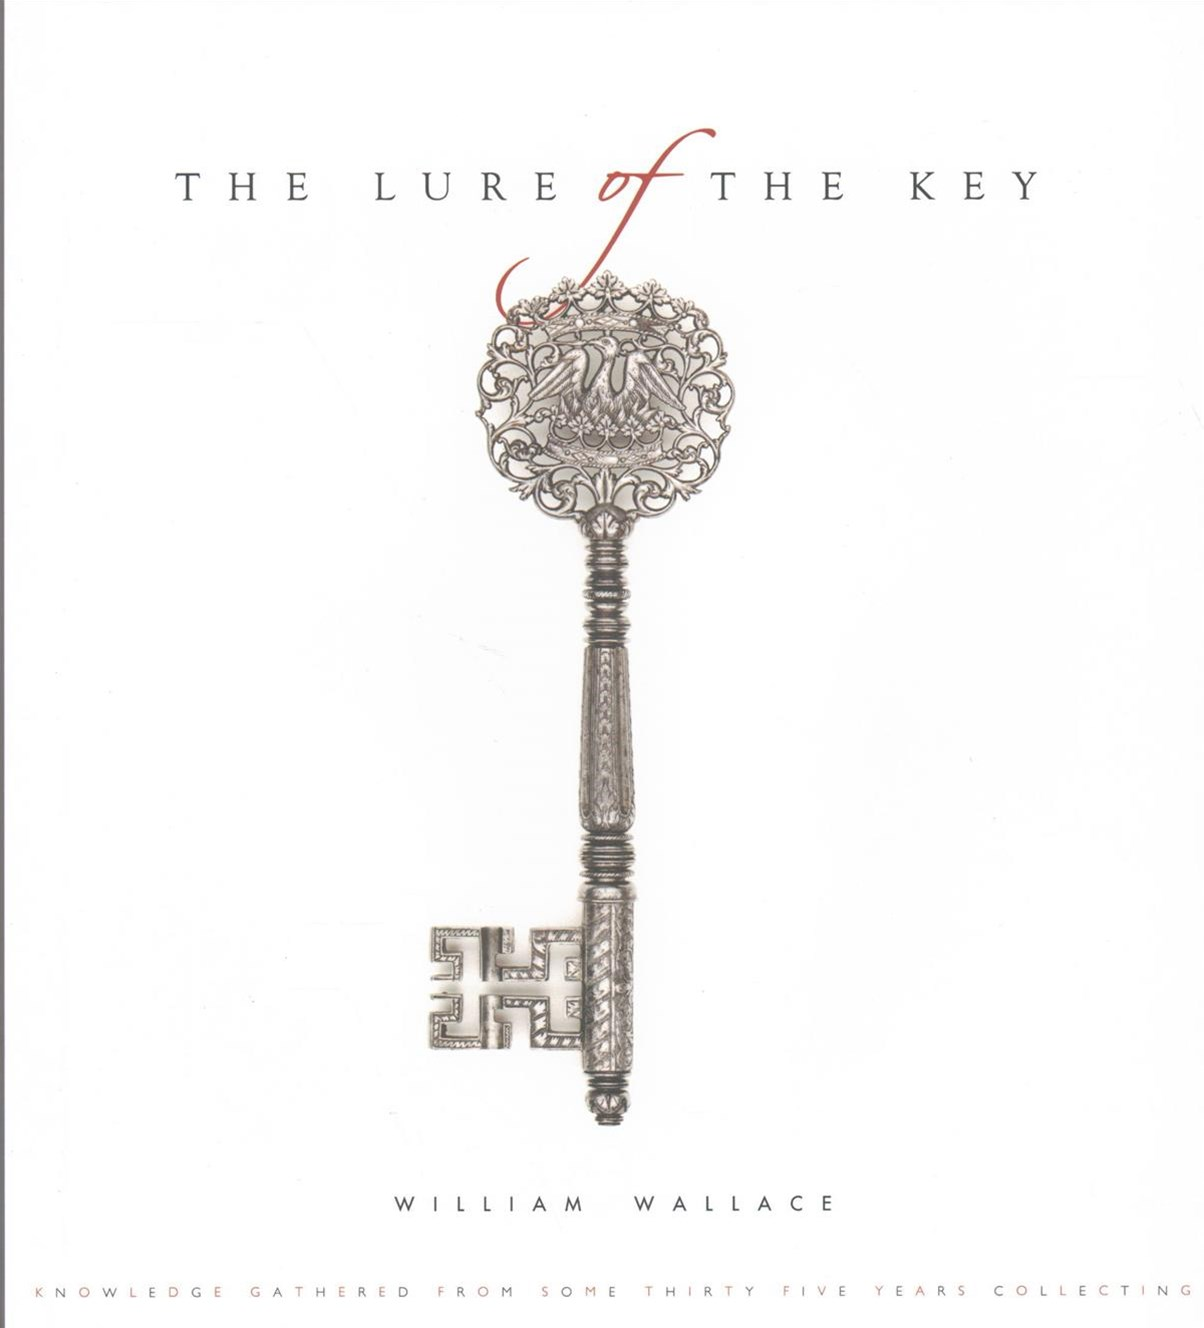 The Lure of the Key